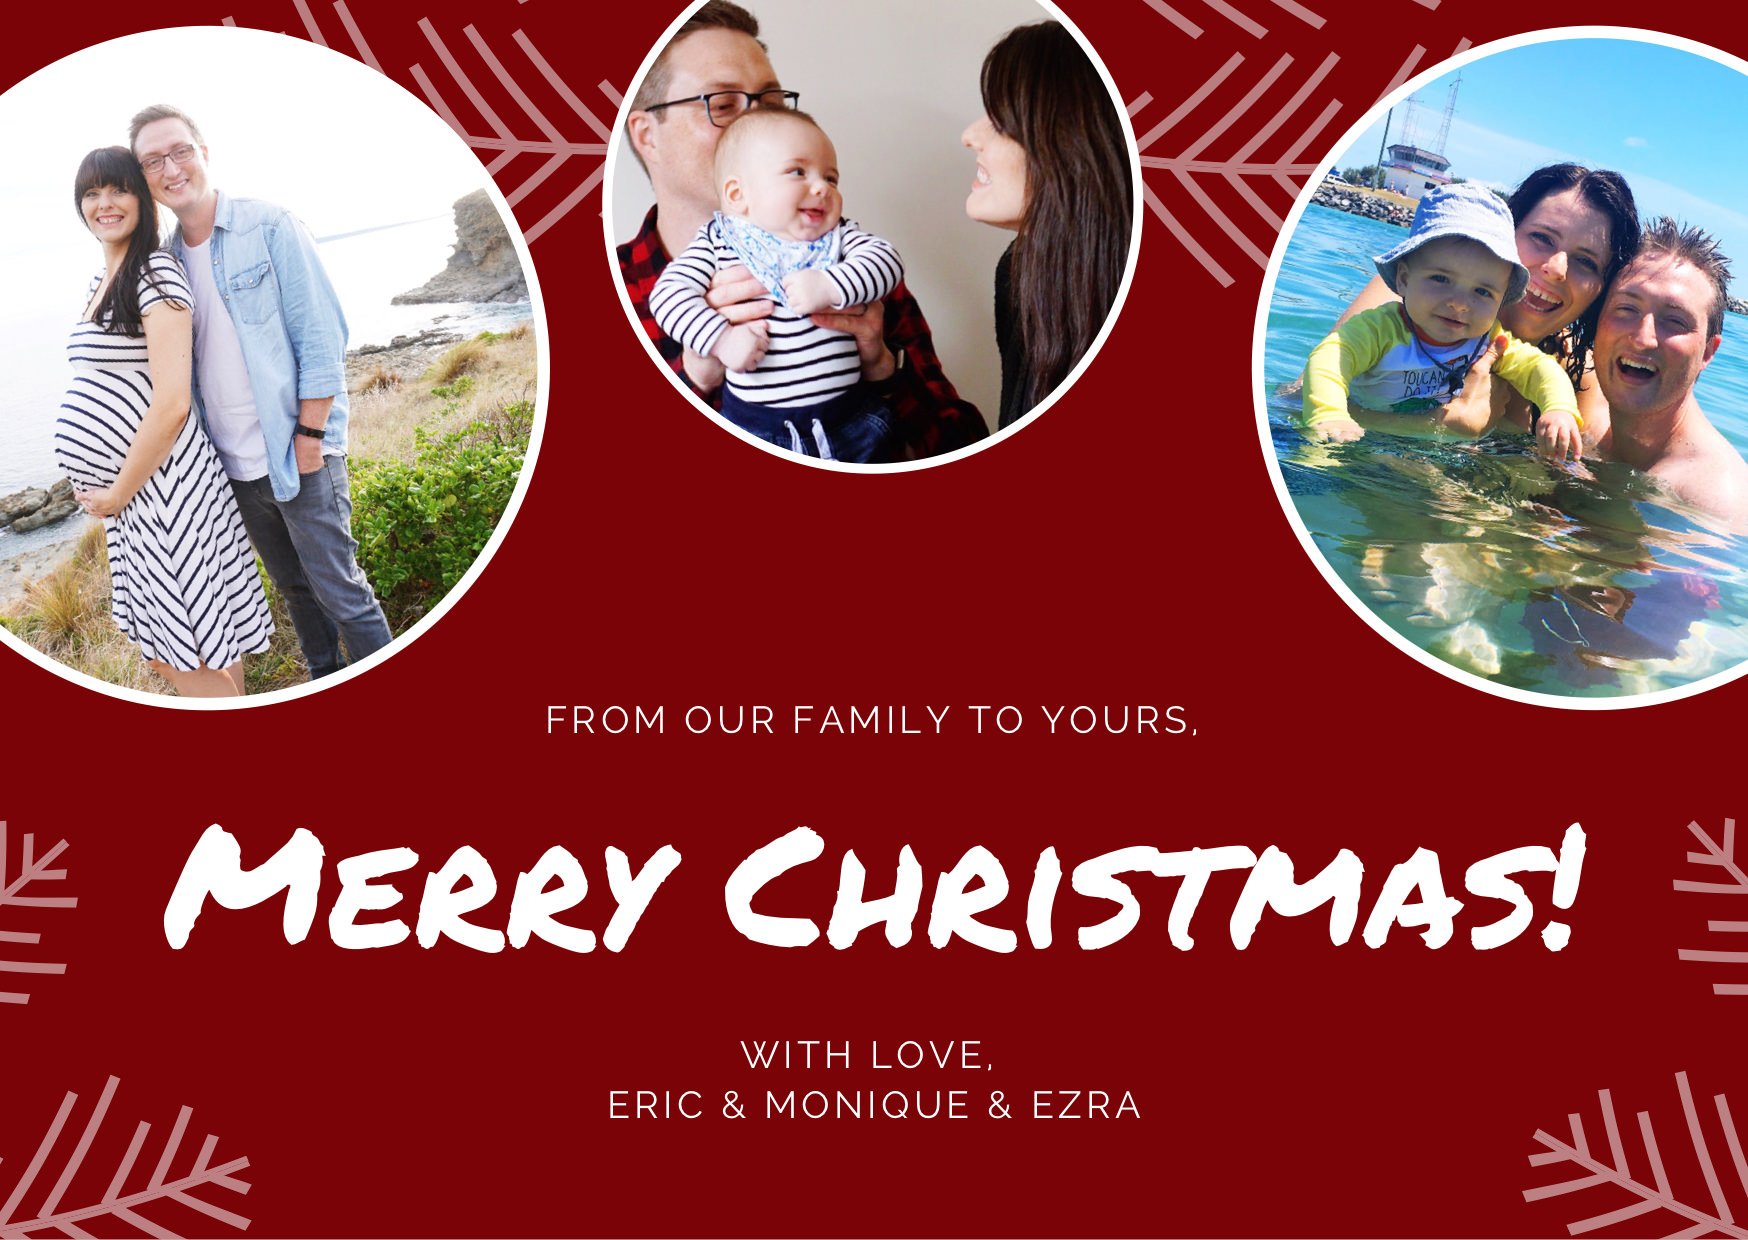 Merry Christmas from Eric & Monique